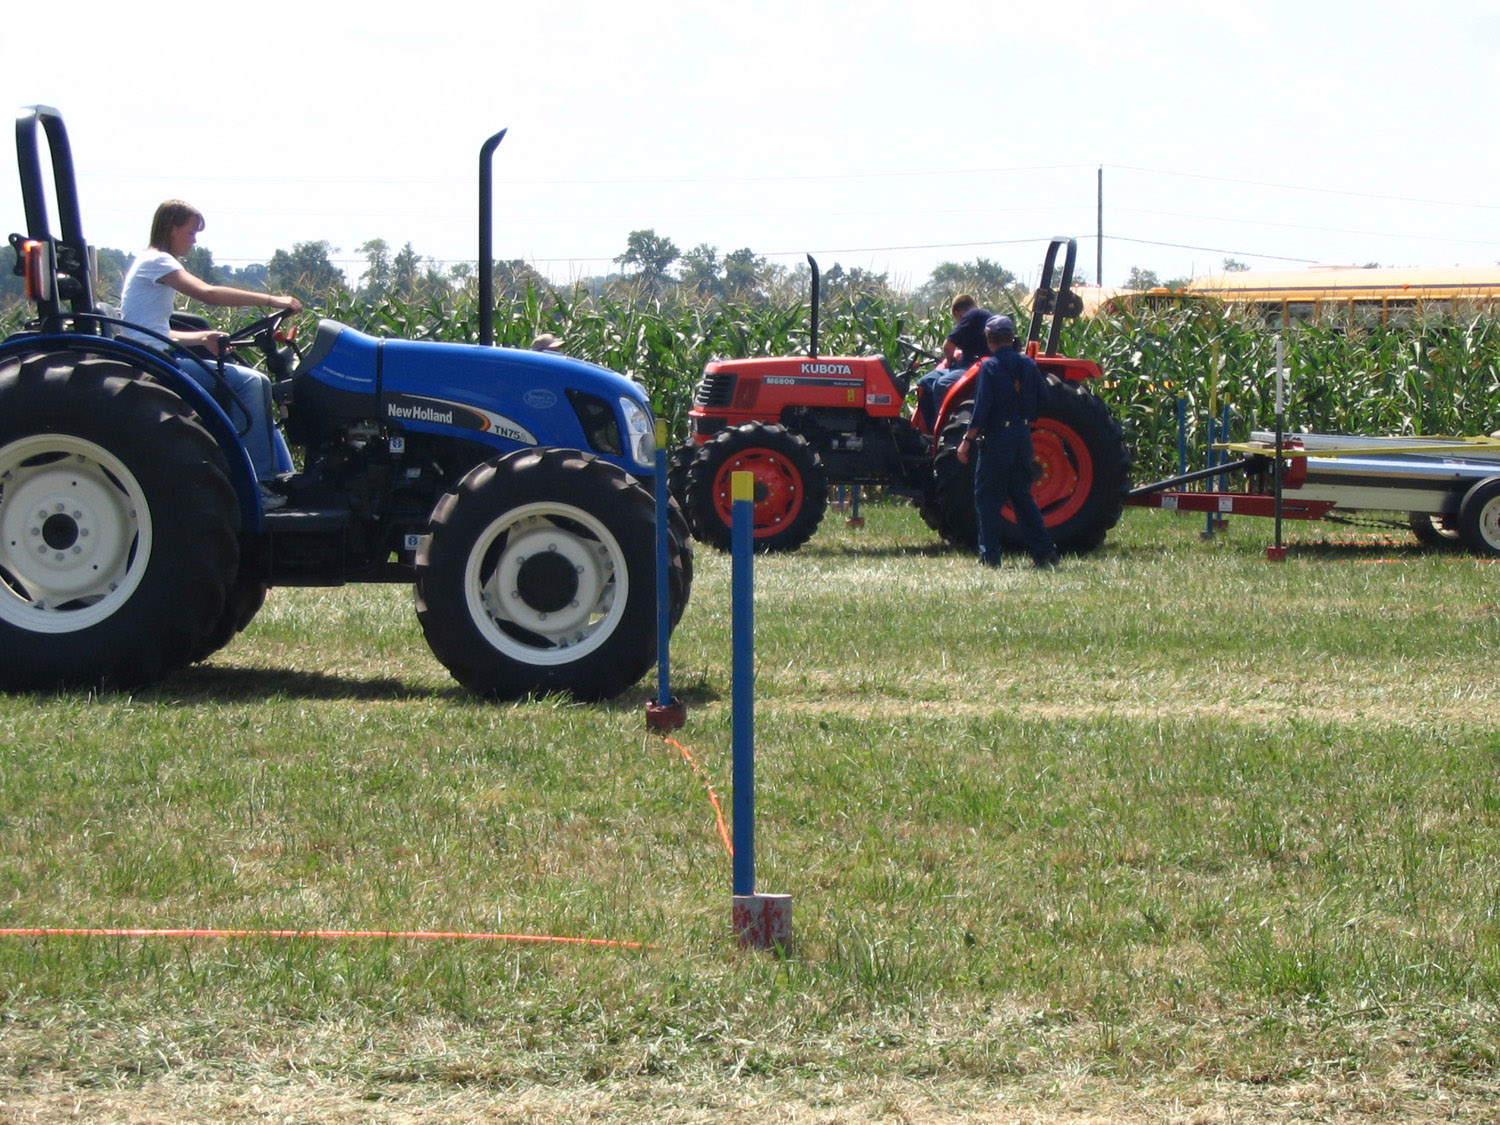 2015 NYS FFA Tractor Driving Safety Contest: Pre-Register by June 29